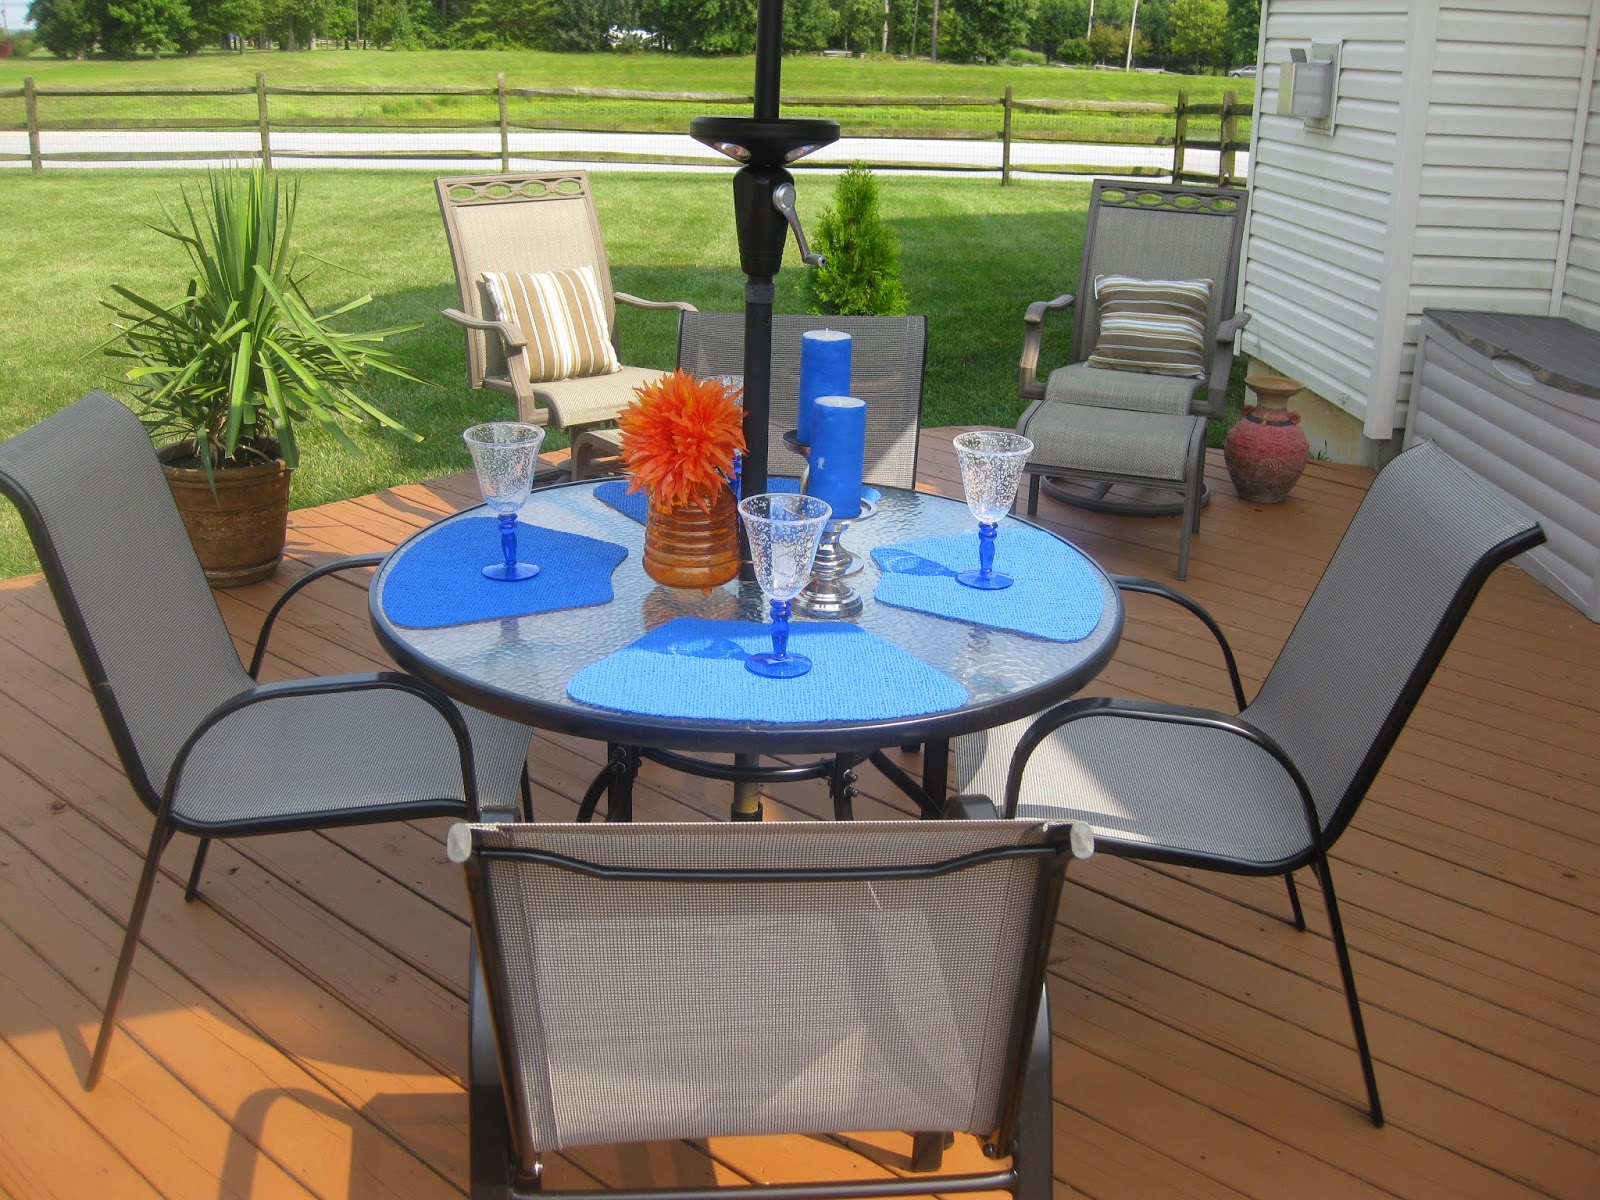 Patio table setting and decor - orange and blue